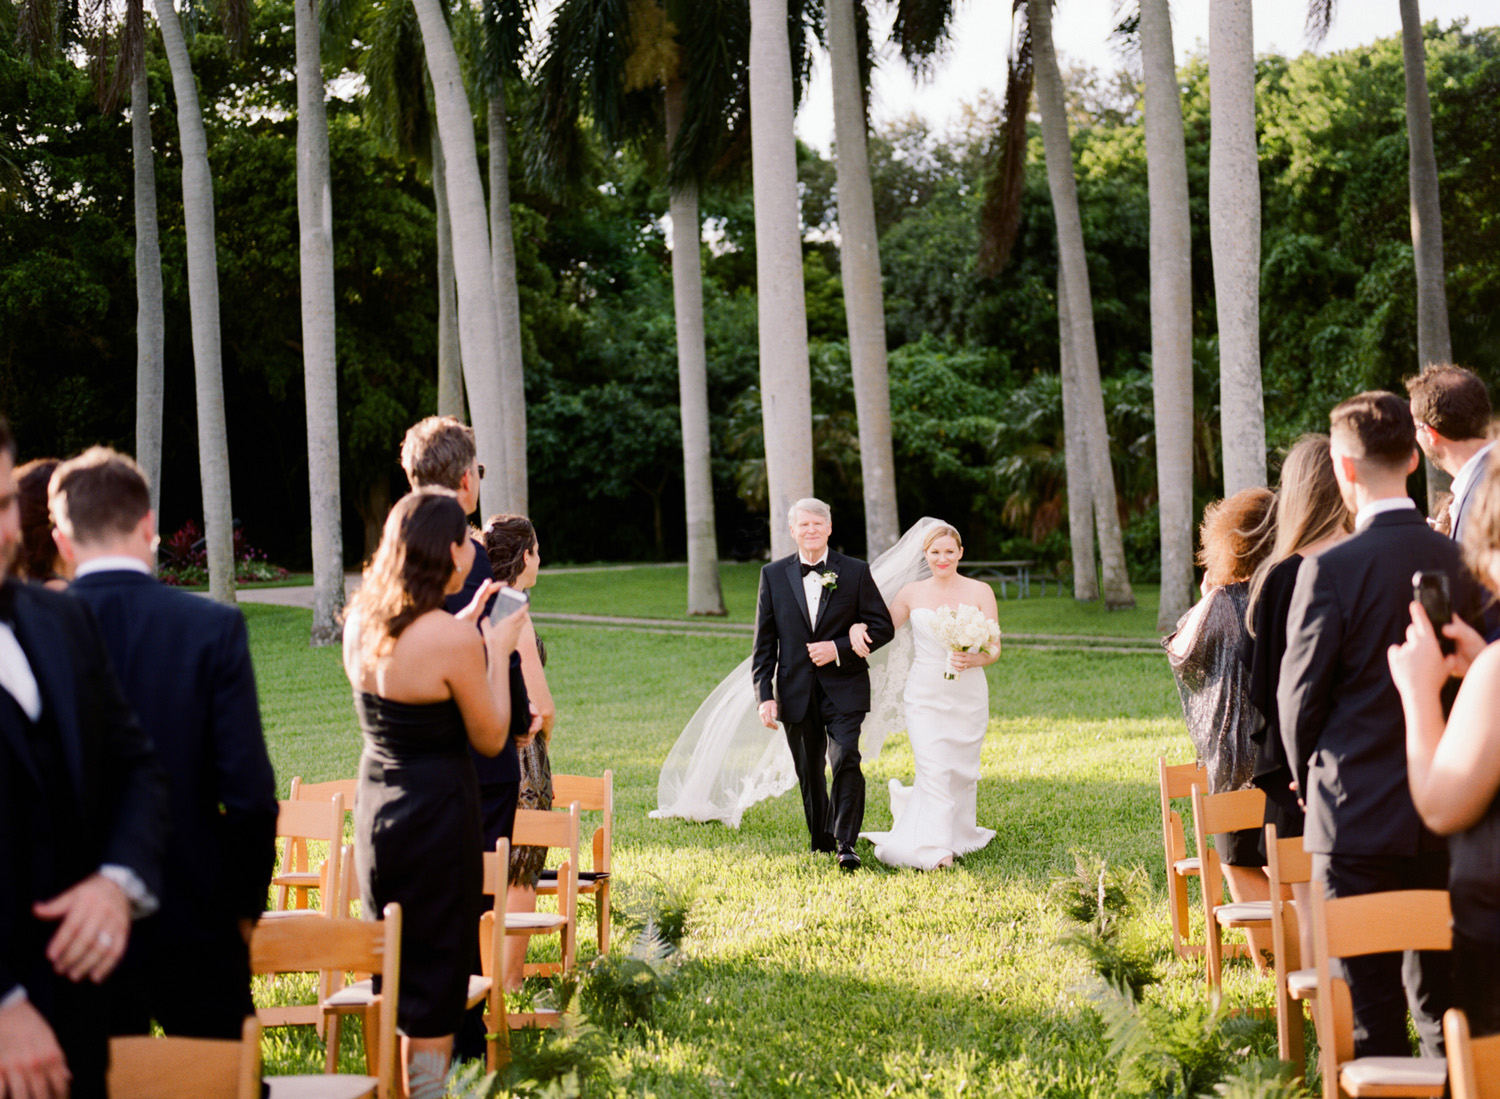 Laura-Carlos-Wedding-Ceremony-027.jpg